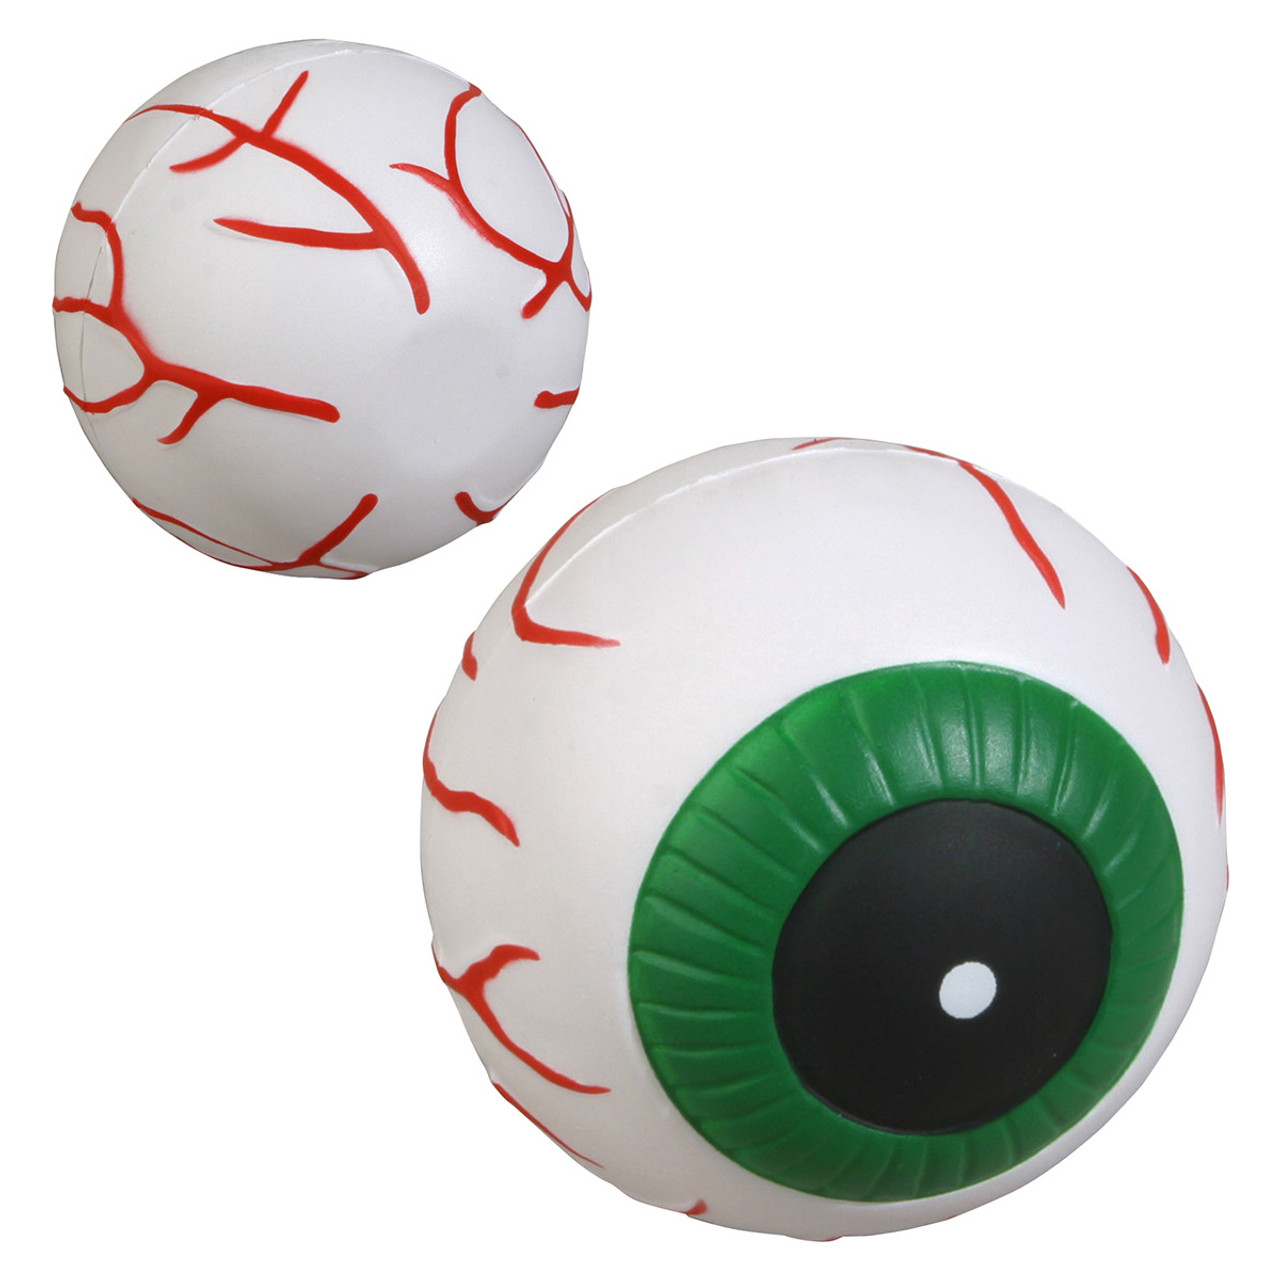 Eyeball Stress Toy, front and back